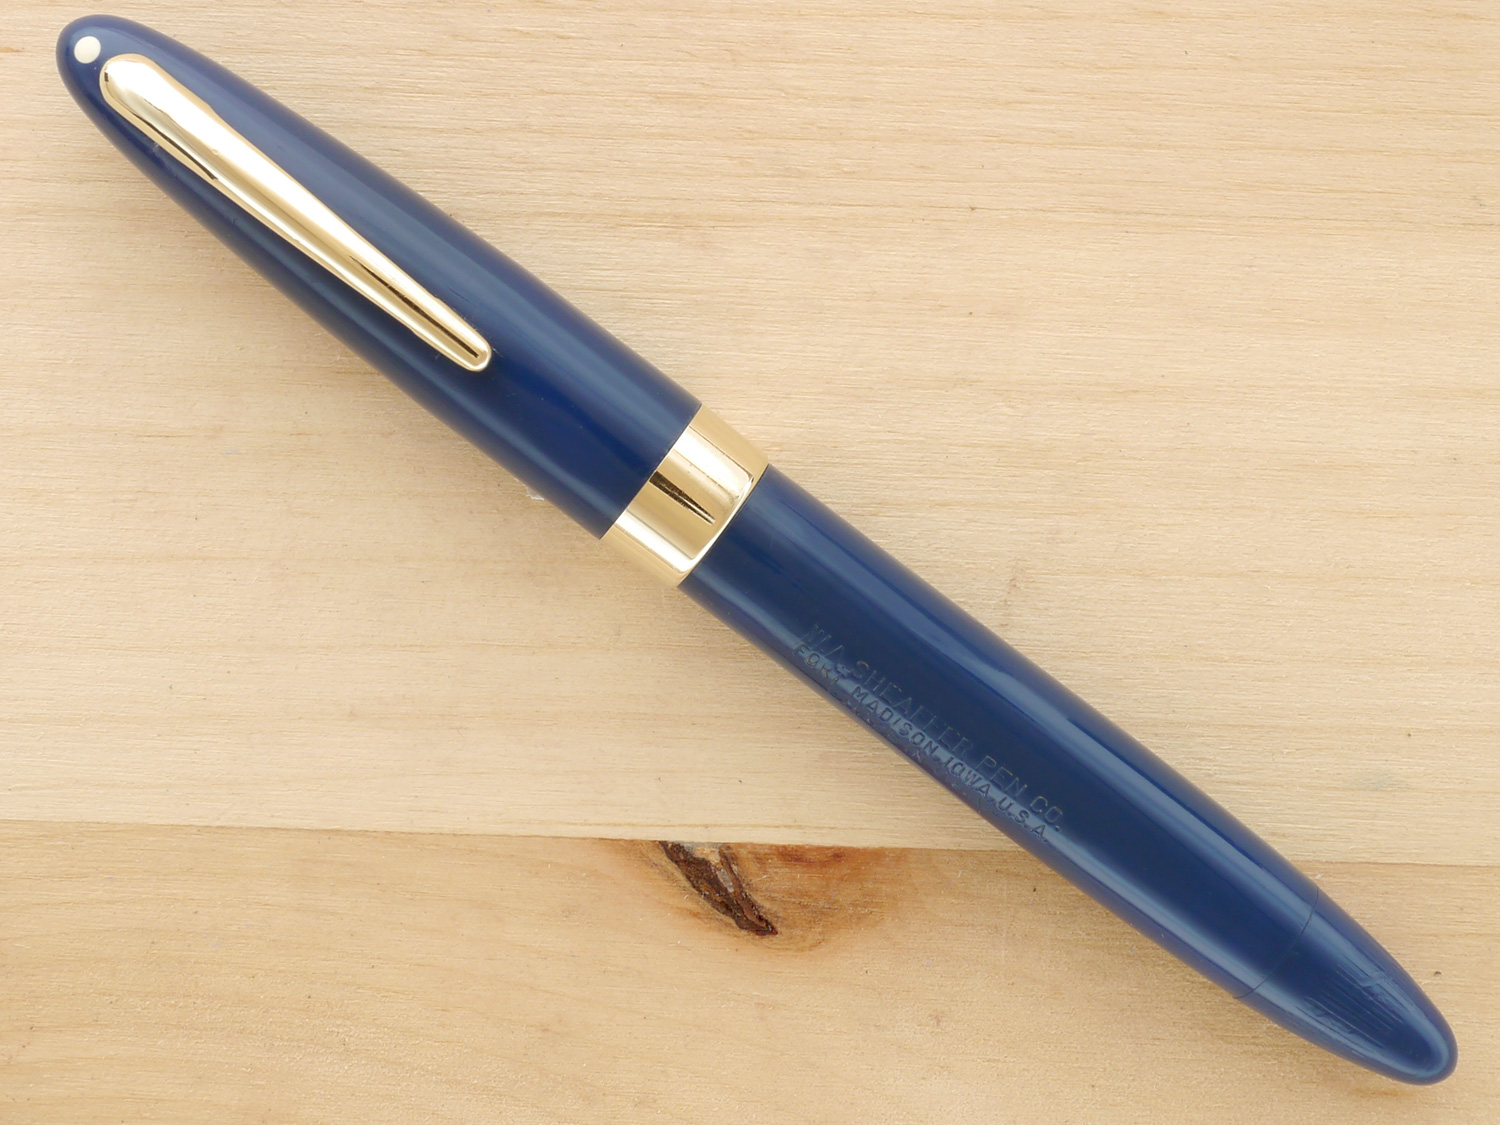 Sheaffer Triumph Statesman Vac, Persian Blue, F, capped